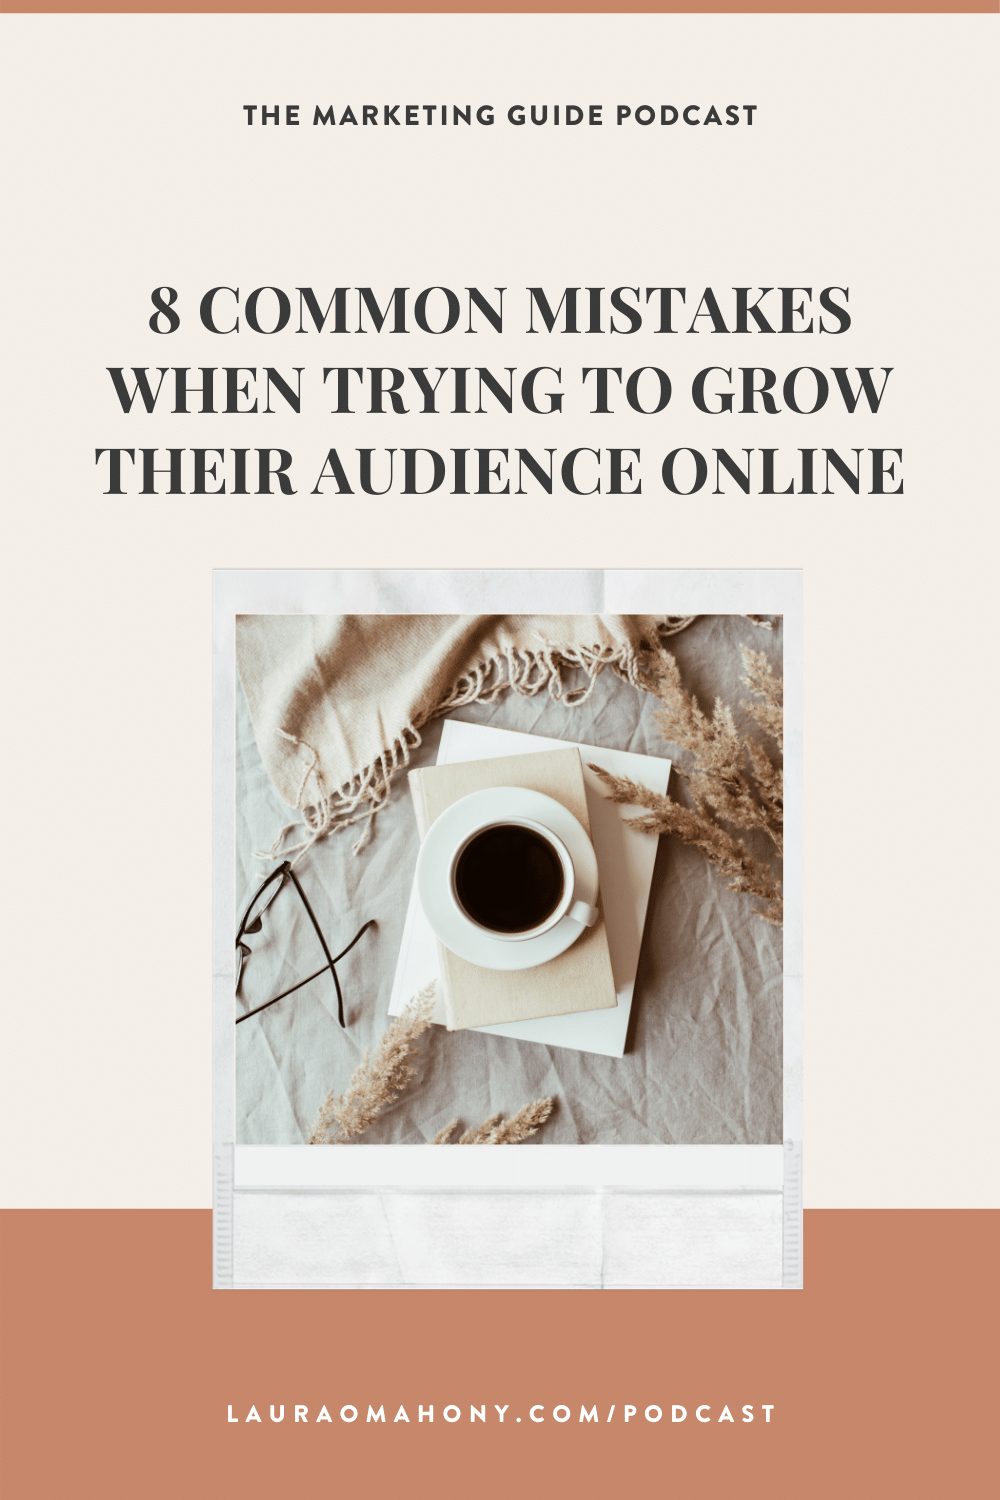 The Marketing Guide Podcast with Laura O' Mahony 8 Common mistakes people make when trying to grow their audience online